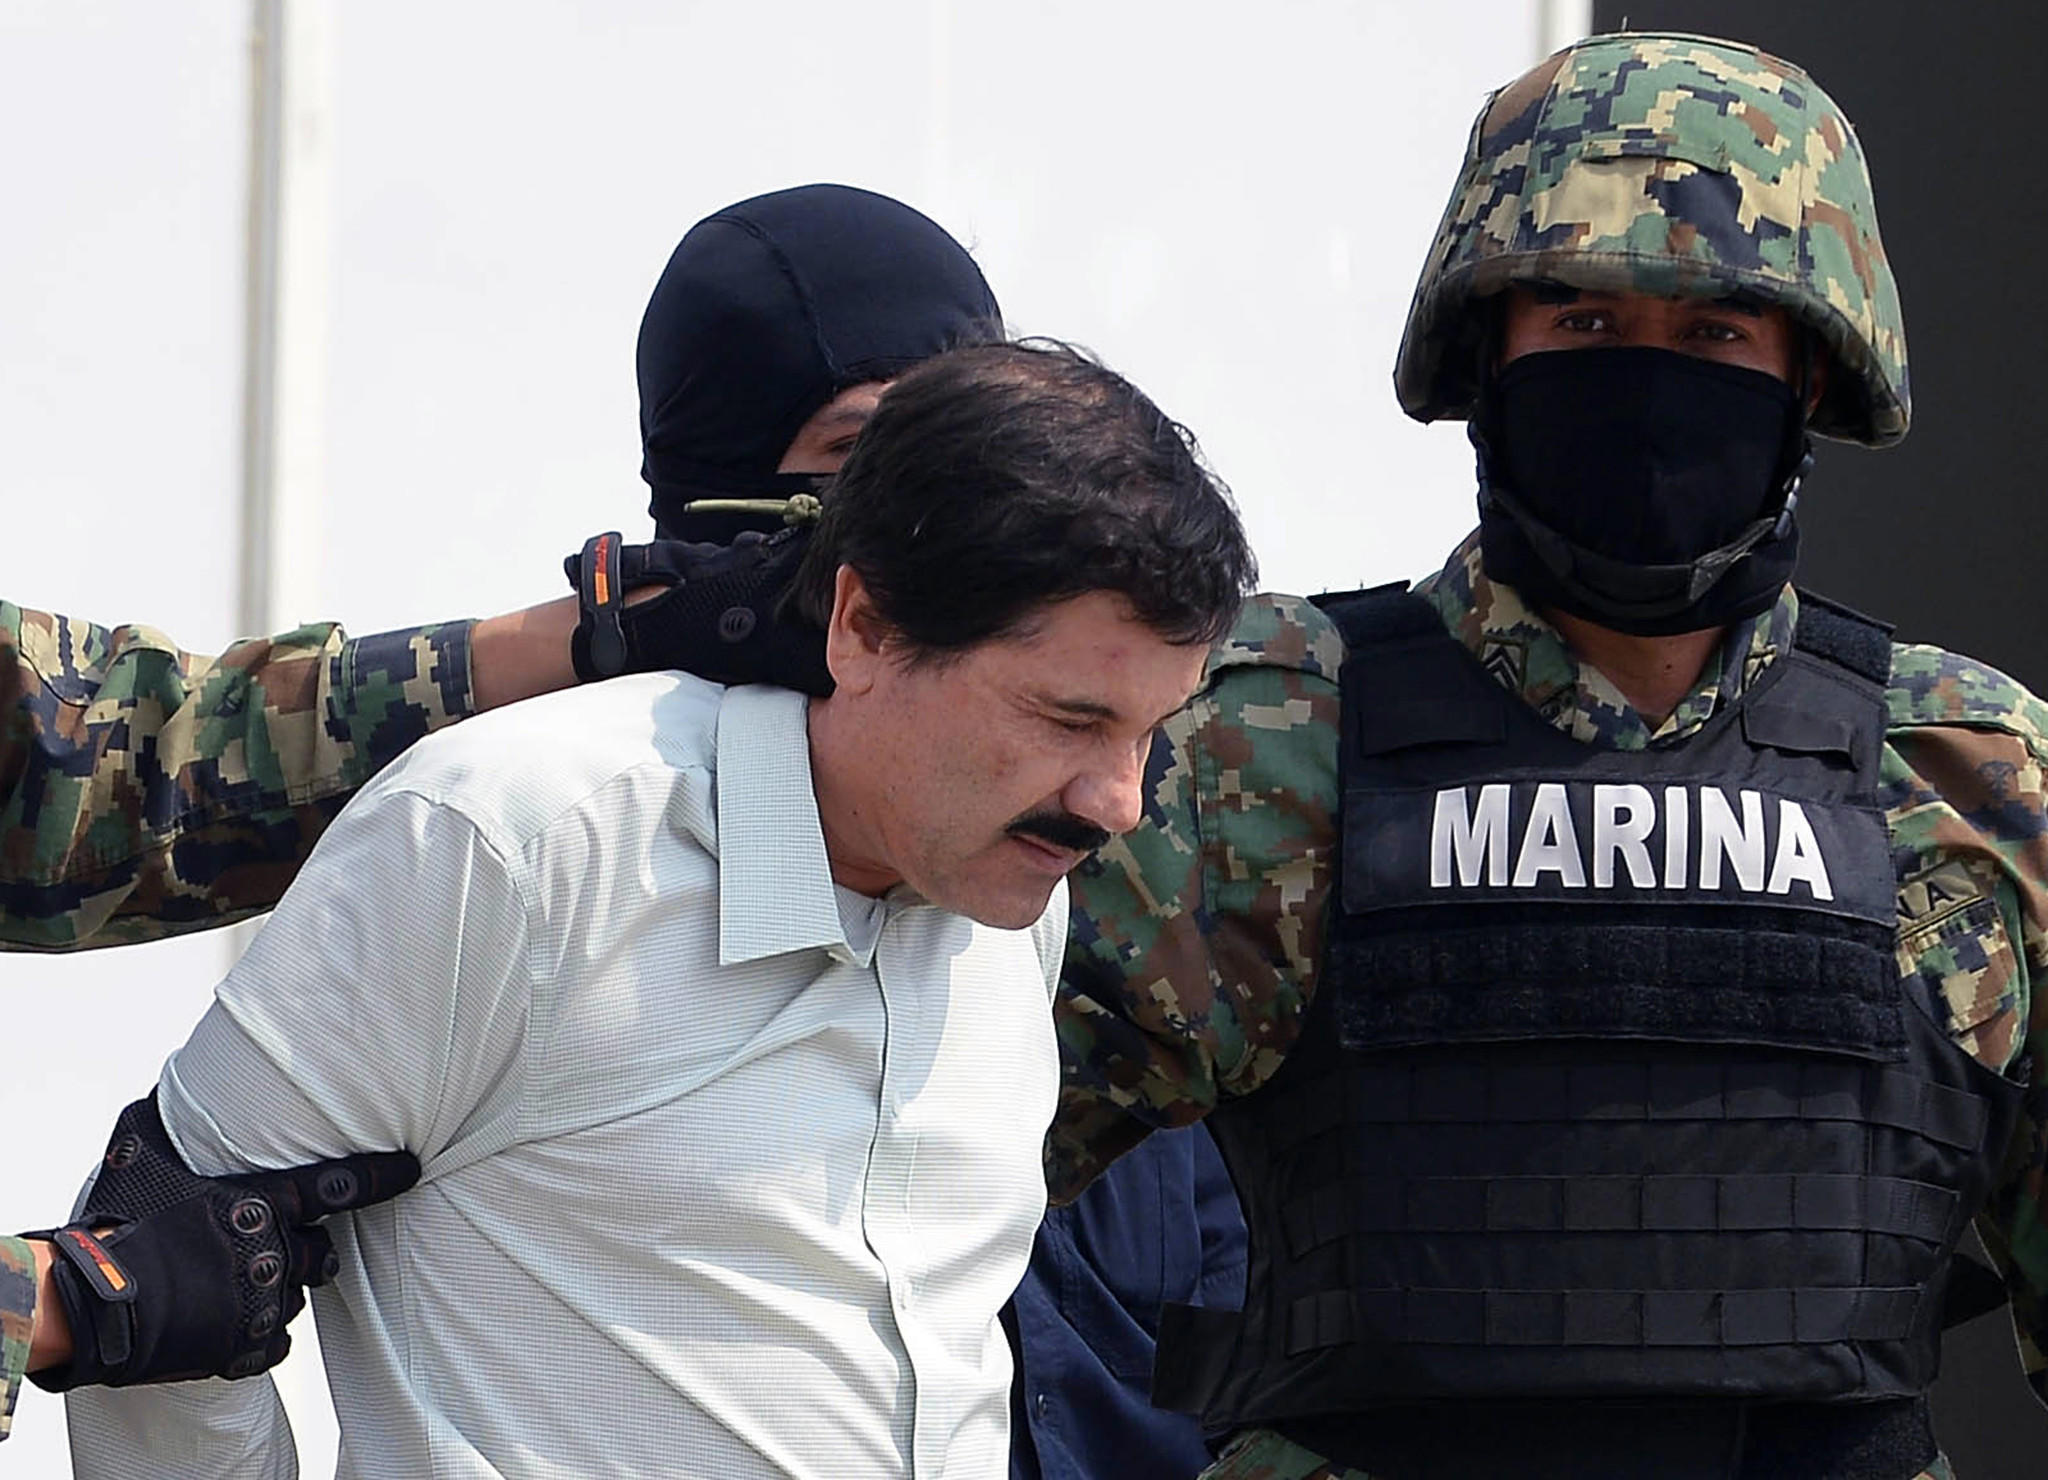 """Arechiga-Gamboa handled transportation and logistics for Joaquin """"Shorty"""" Guzman, pictured here, the world's most wanted drug lord who was captured earlier this year in collaboration with U.S. agents."""